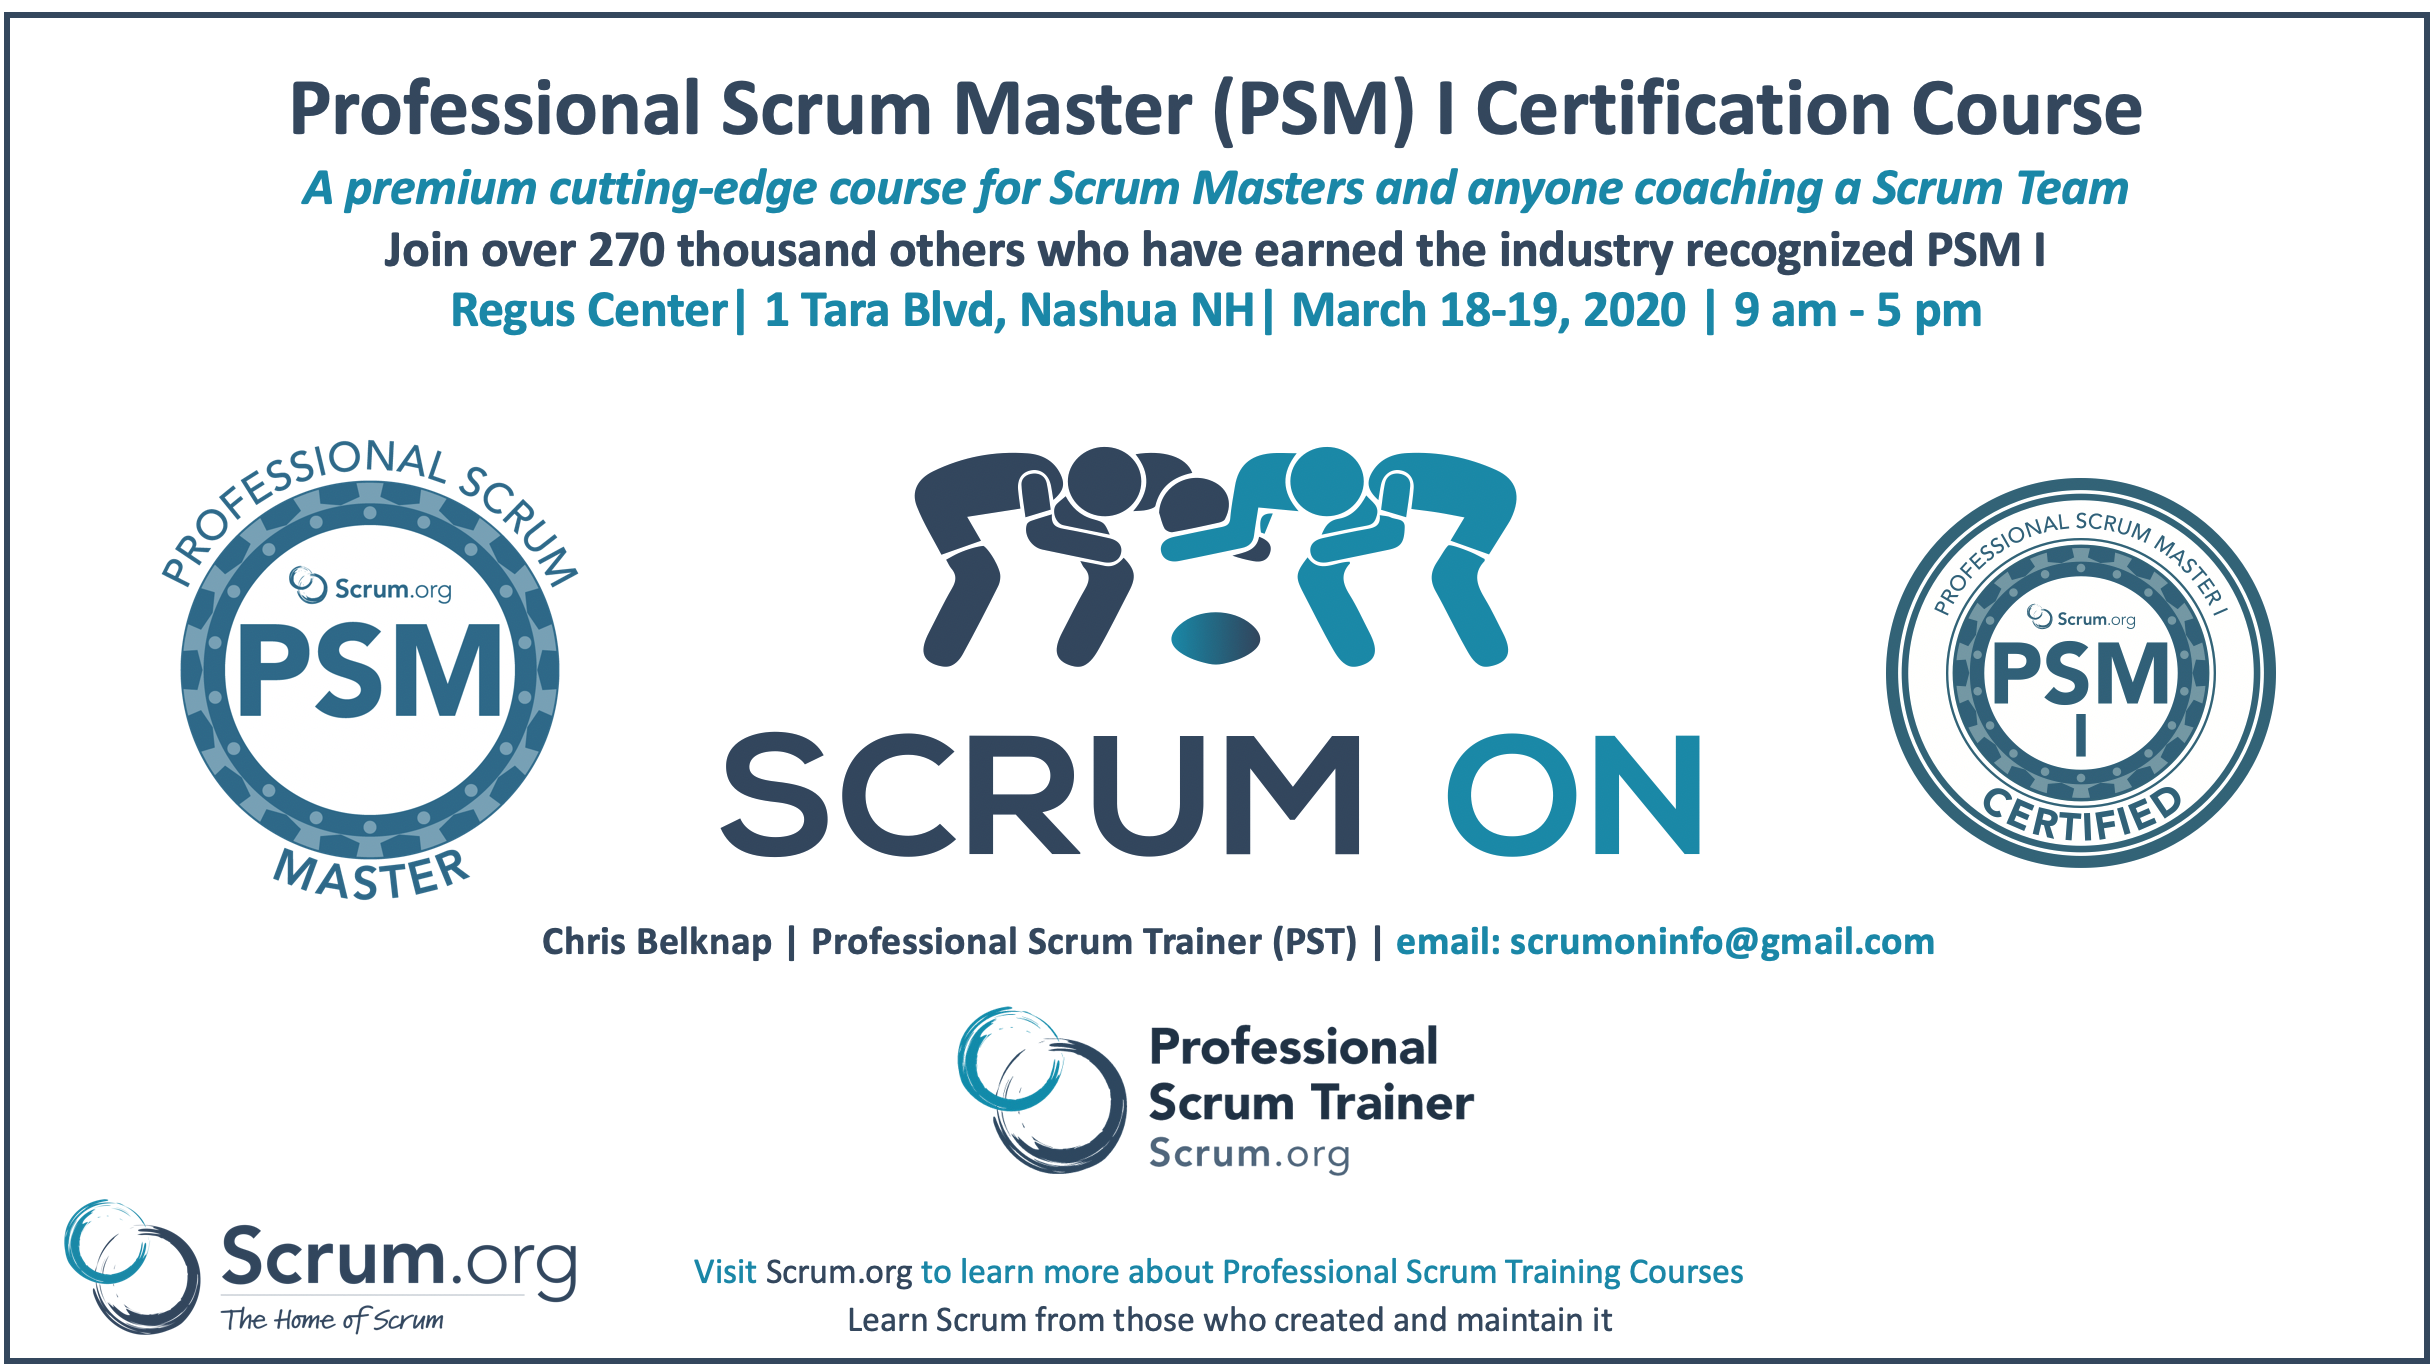 Nashua NH Professional Scrum Master PSM Training Course with PSM Certification